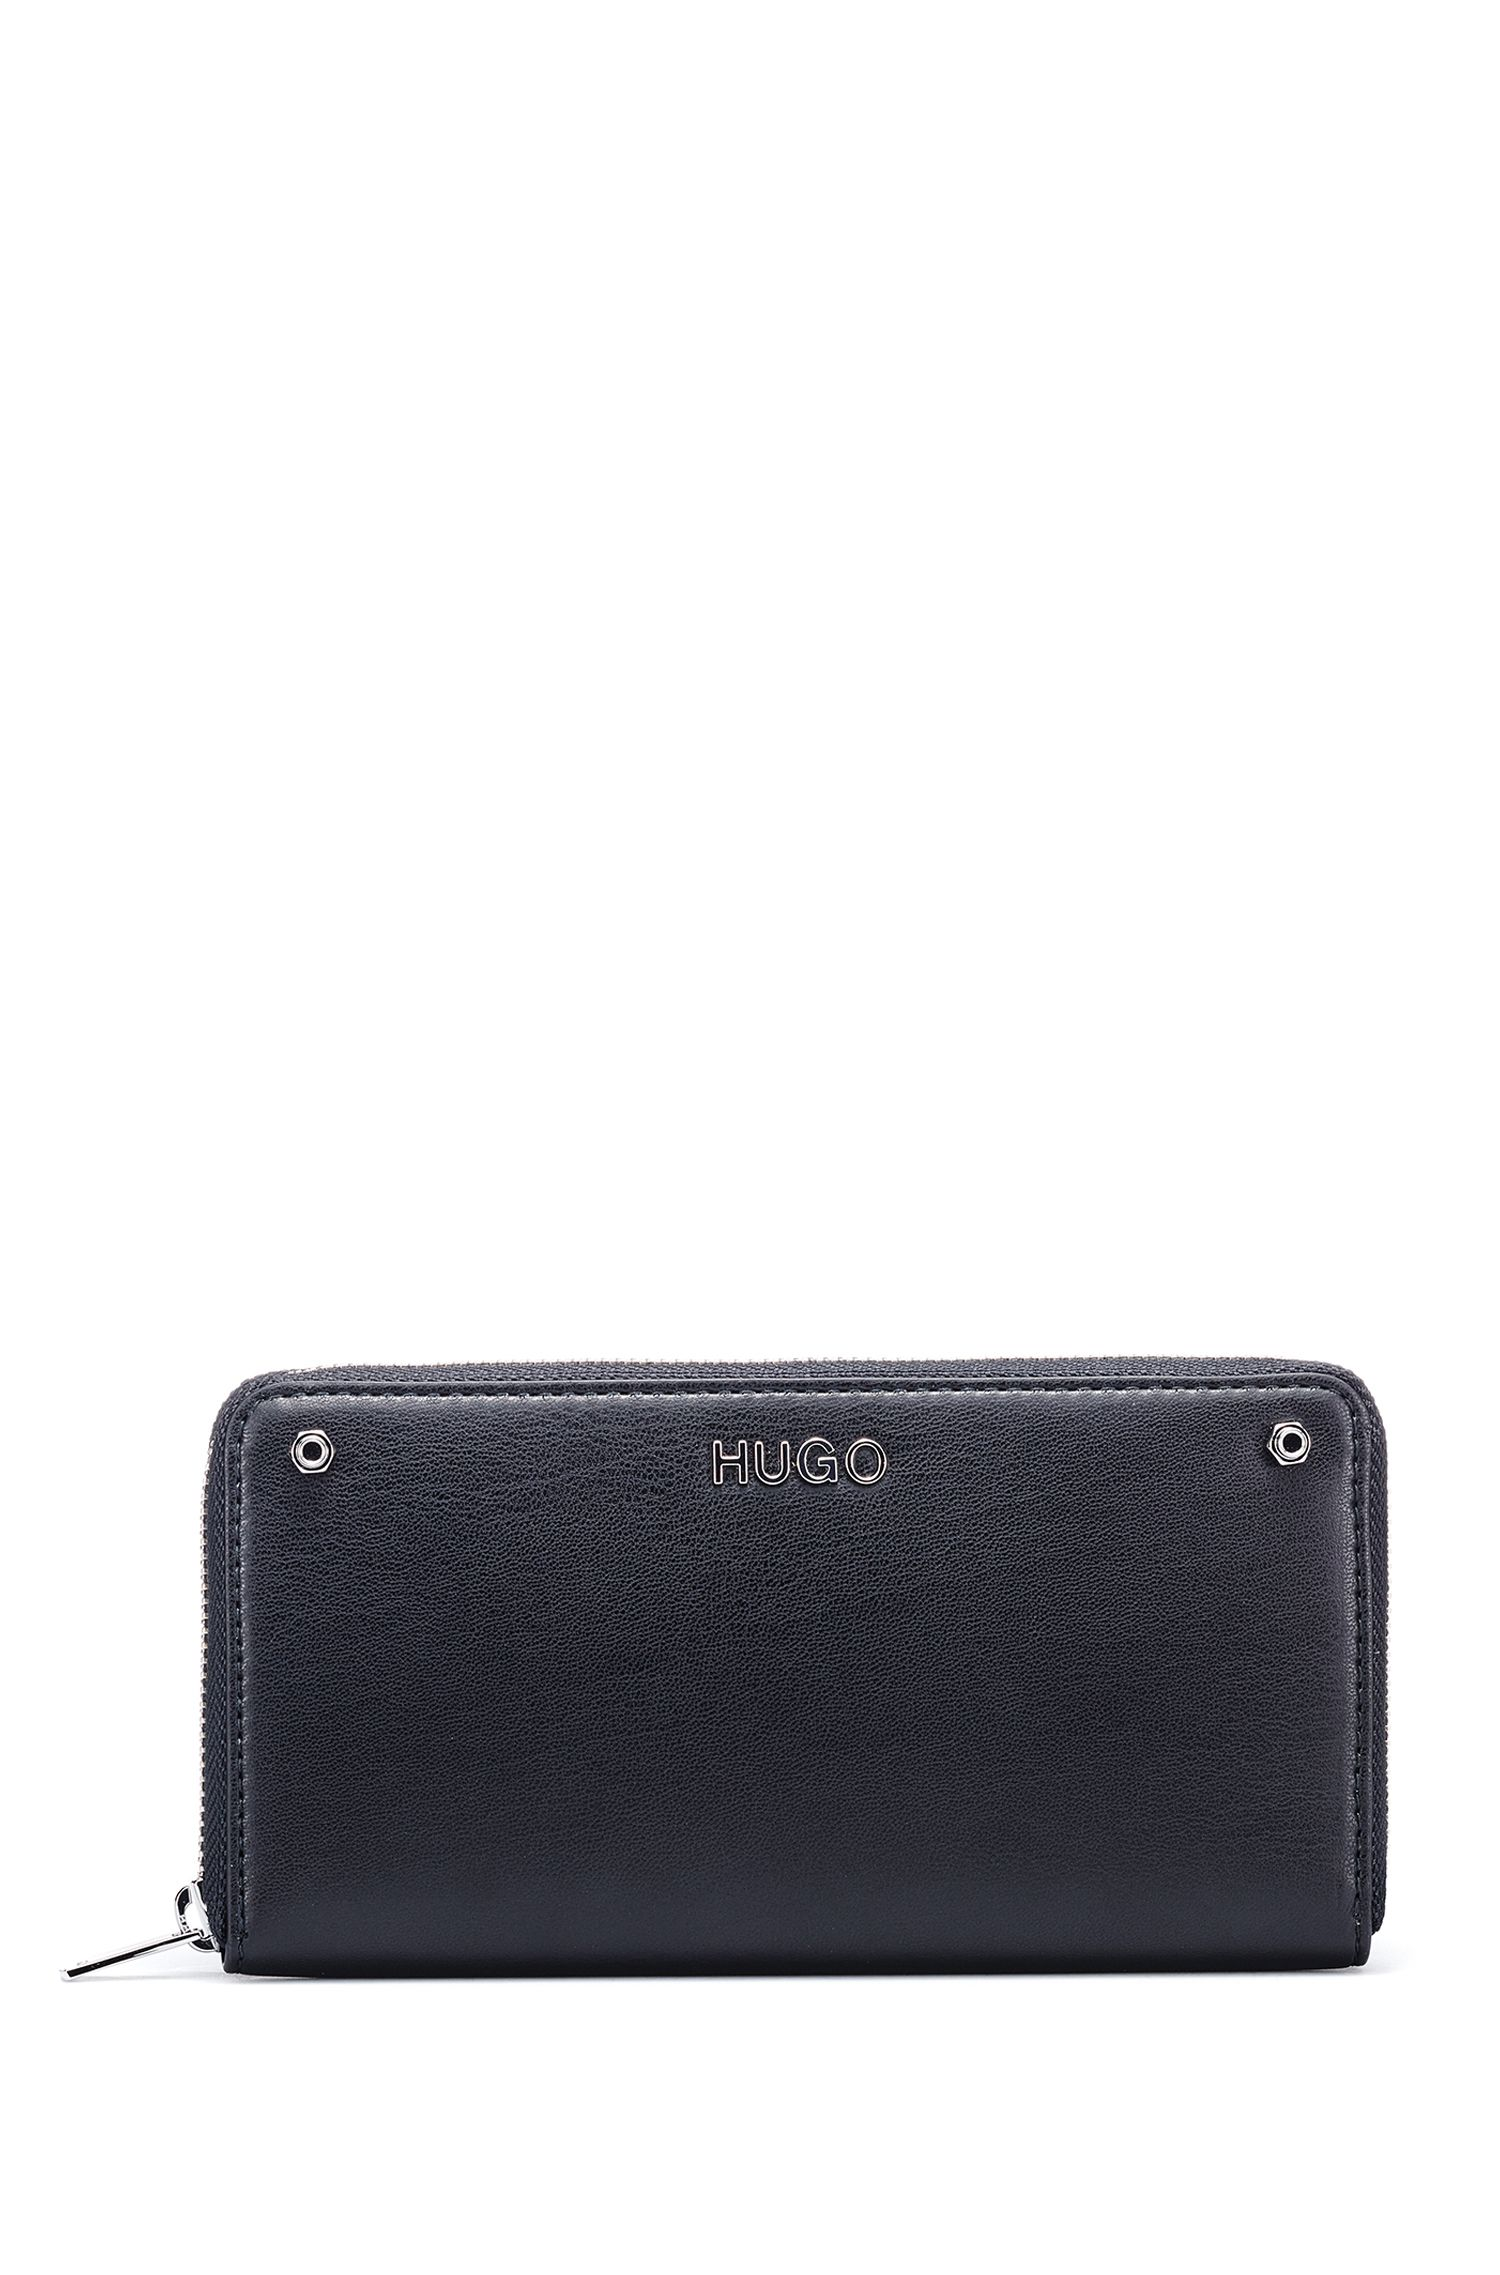 Zip-around wallet in faux leather with metallic logo, Black